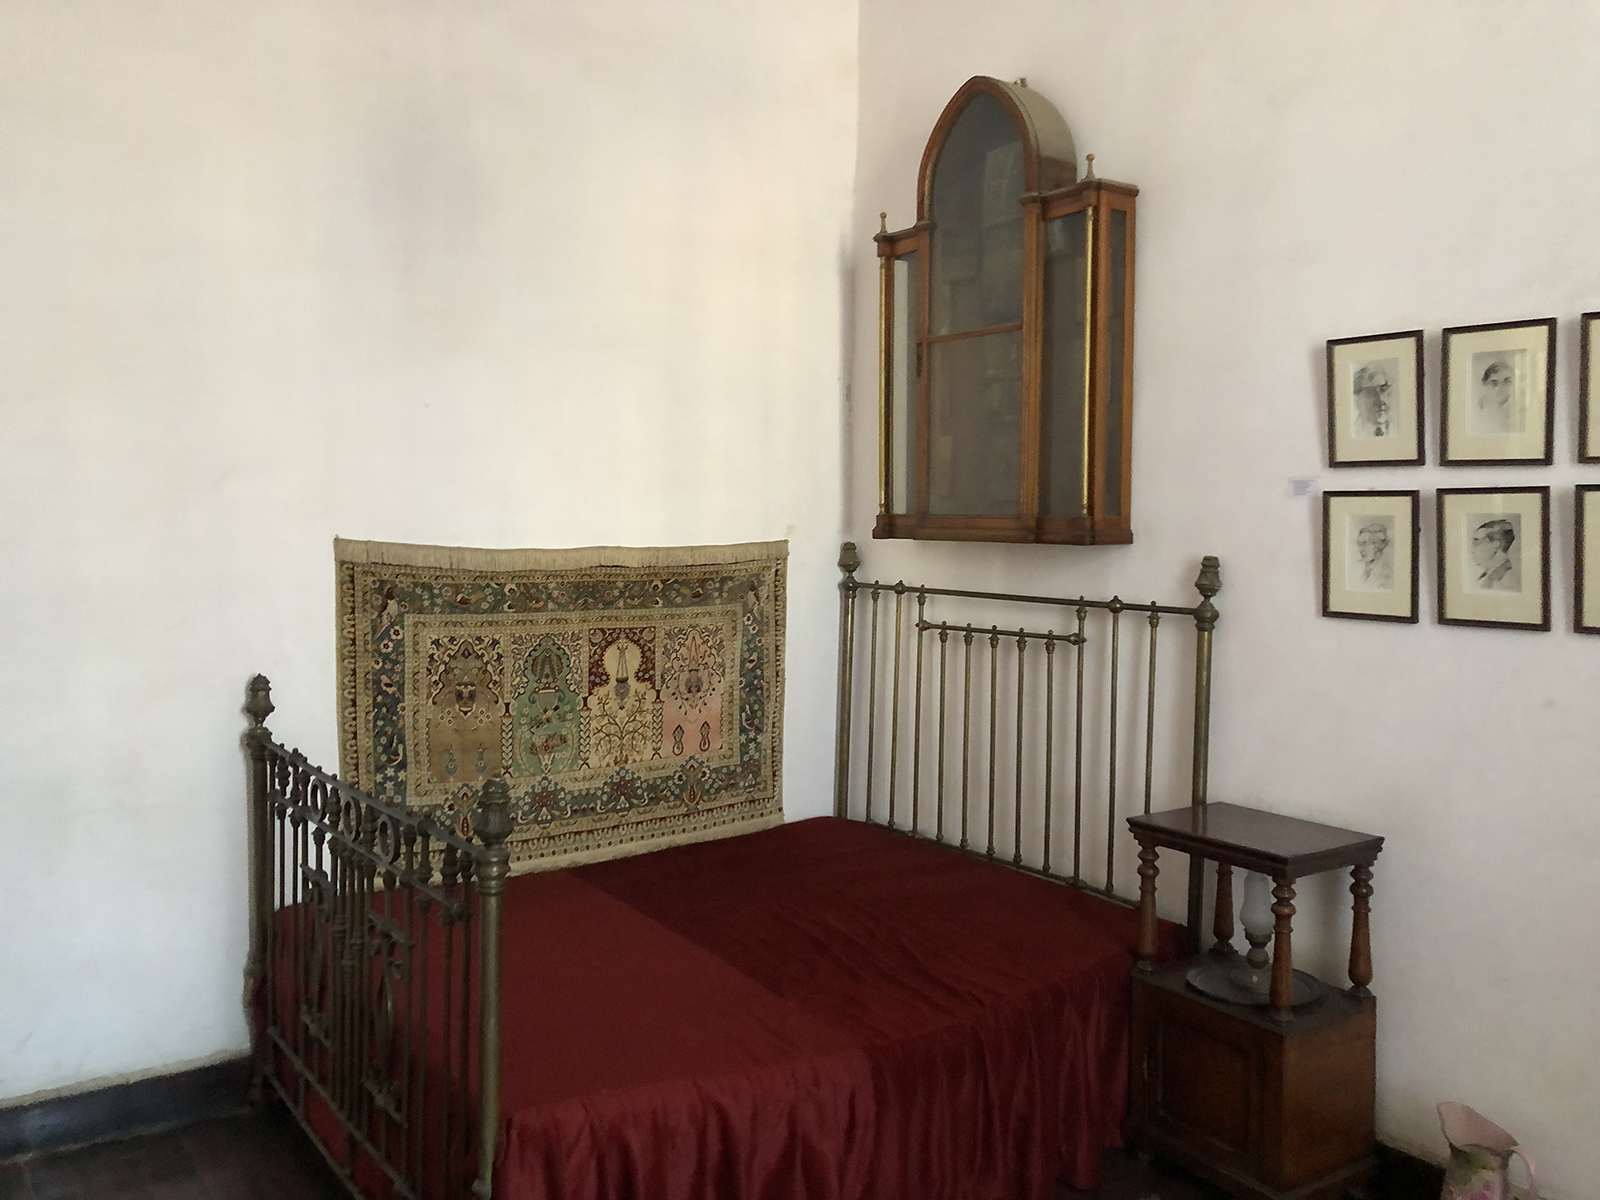 The Constantine Cavafy museum of the poet's former apartment in Alexandria, Egypt. RNS photo by Joseph Hammond